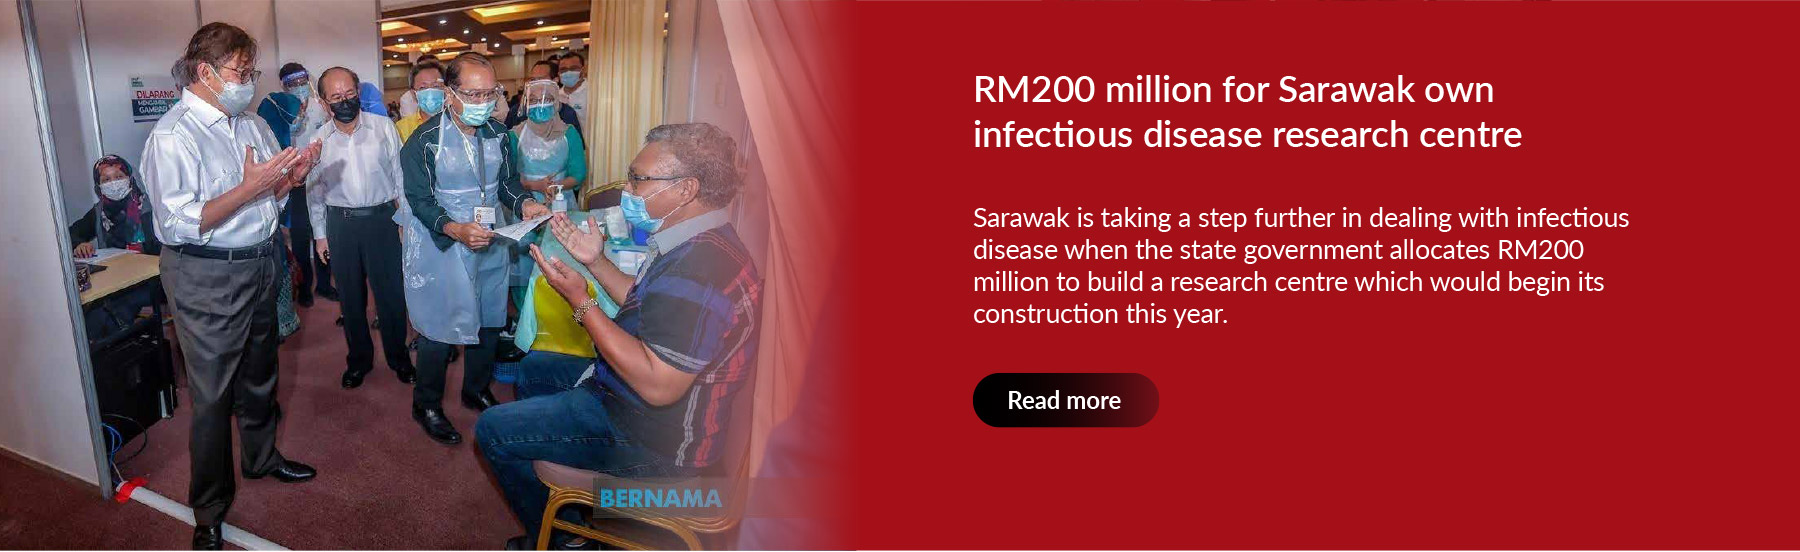 RM200 million for Sarawak own infectious disease research centre